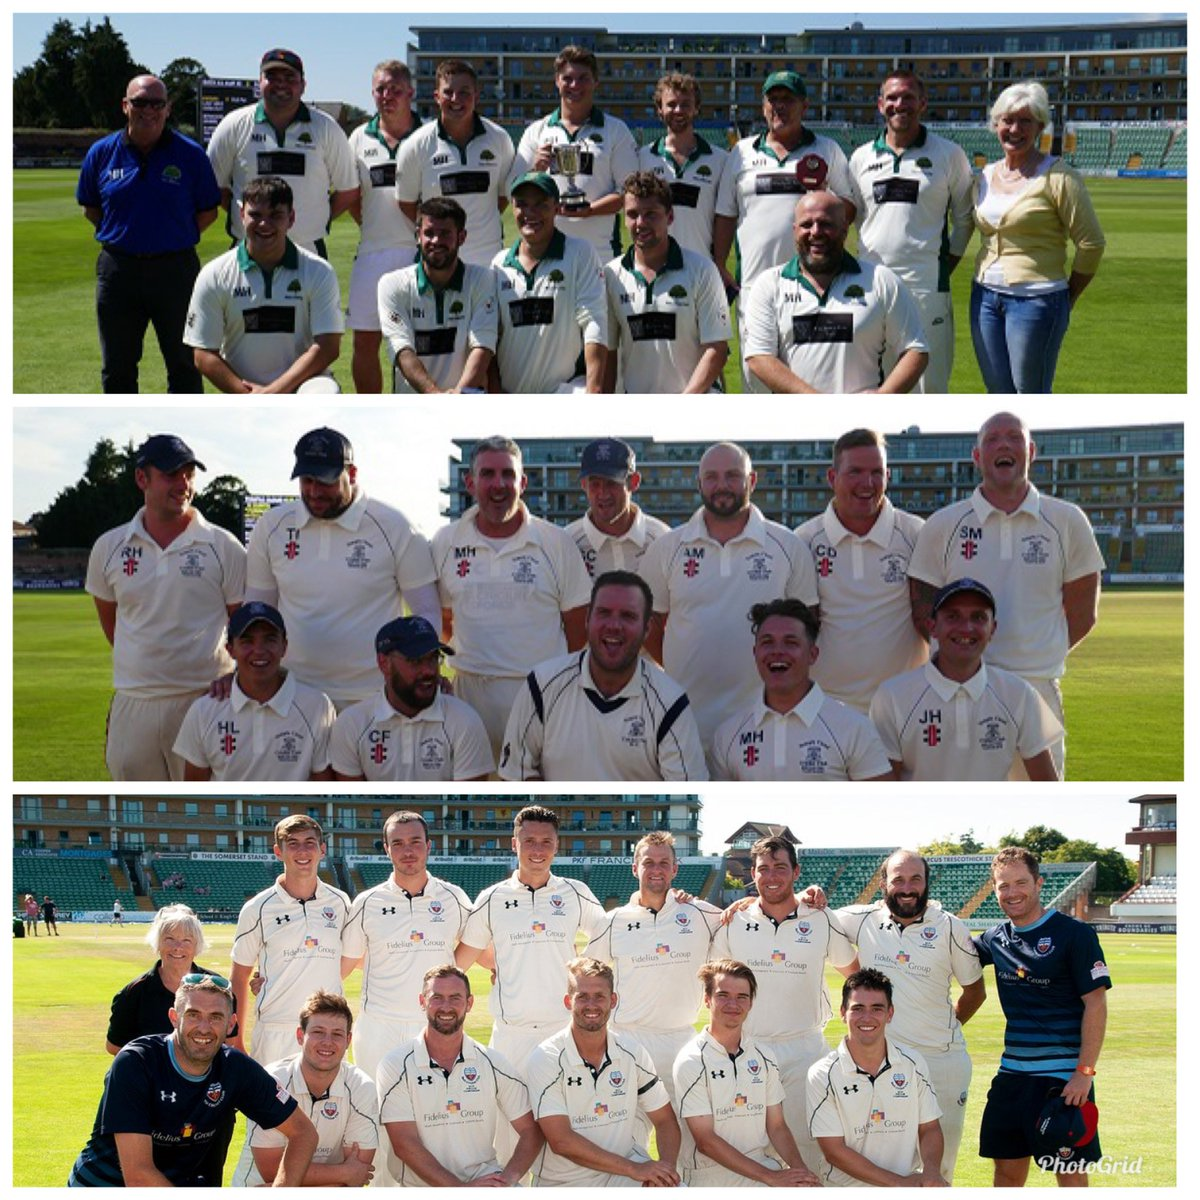 test Twitter Media - #ThrowbackThursday to last summer when @TrullCC 2's, @bathcricket & @Templecloud were all victorious at SCB KO Cup Finals Day  🏆🏆🏆  ➡️https://t.co/W6U1ZGZFjU  🏏Could this be your club in 2019?  ✍️Enter now ➡️https://t.co/YTlE2HOCqA  #RoadToTaunton #SCBKoCups #SomersetCricket https://t.co/0sOLMPwVCt